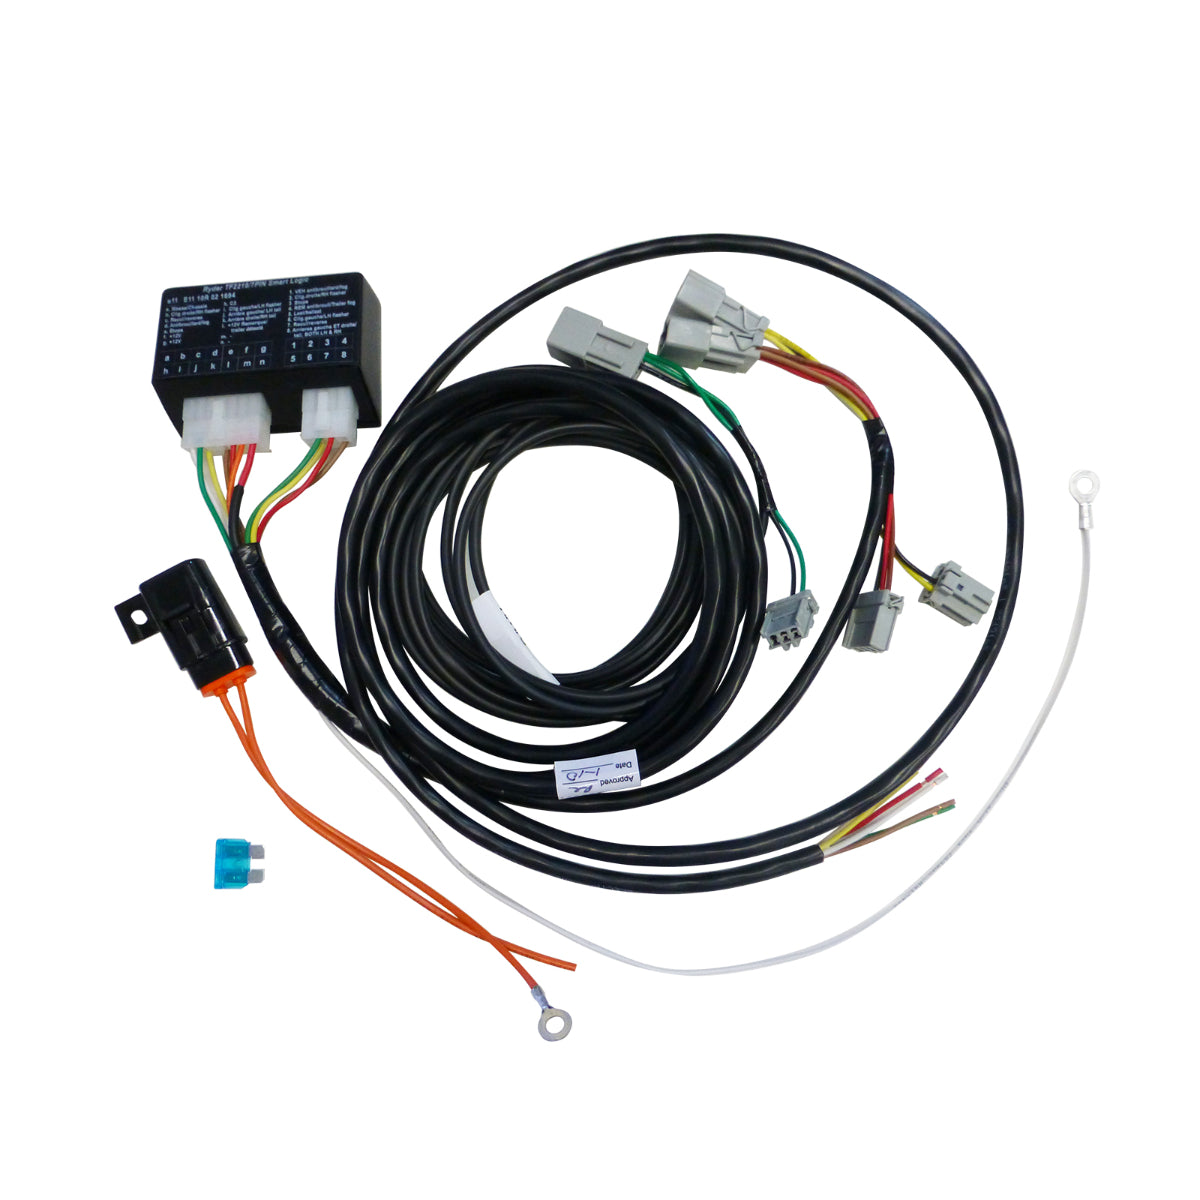 TAG Towbar Wiring Direct Fit Ecu to suit Mazda CX-5 (02/2012 - 03/2017)